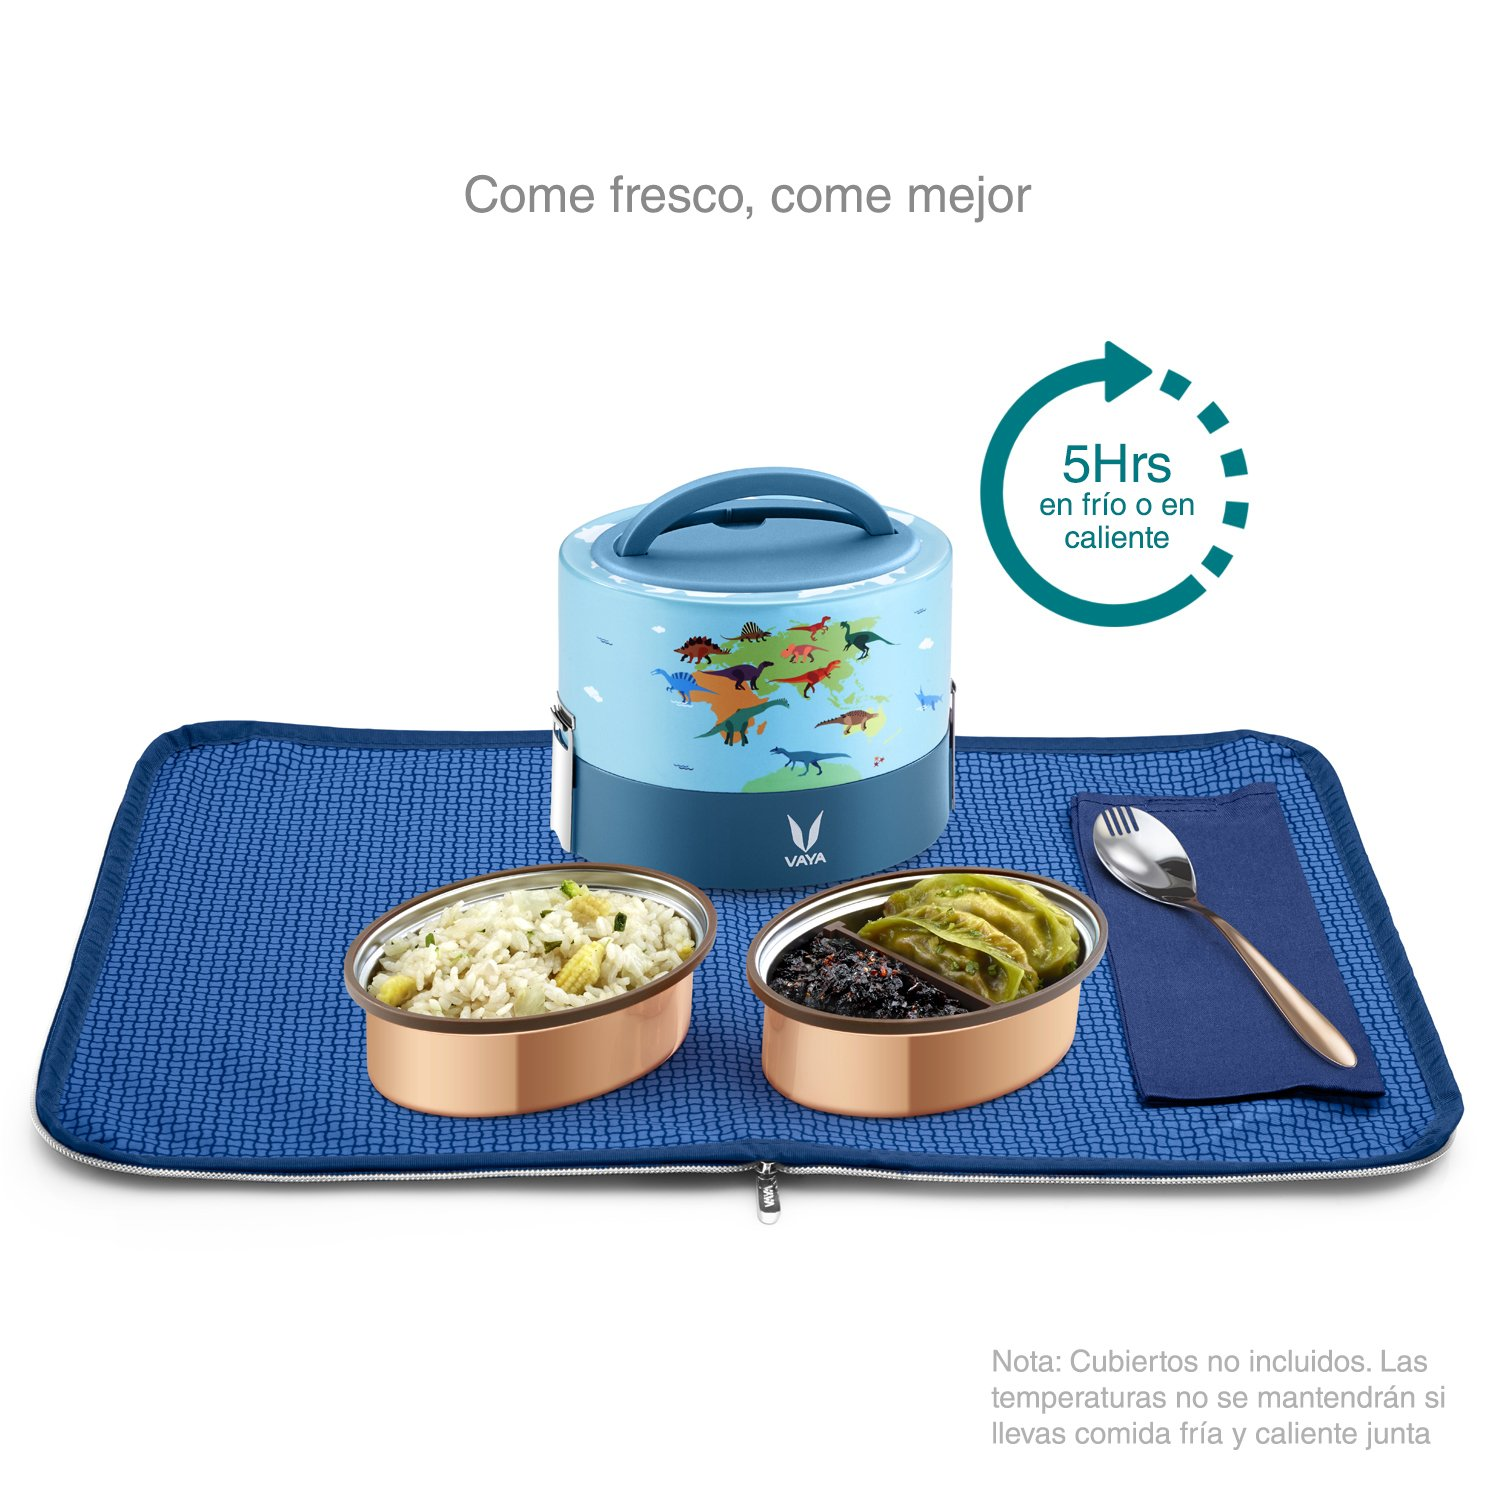 Amazon.com: Vaya Tyffyn 600 Insulated Lunch Box With Bagmat-Stainless Steel Leak-Resistant Food Storage Container- 100% BPA Free, Eco-Friendly & Reusable ...